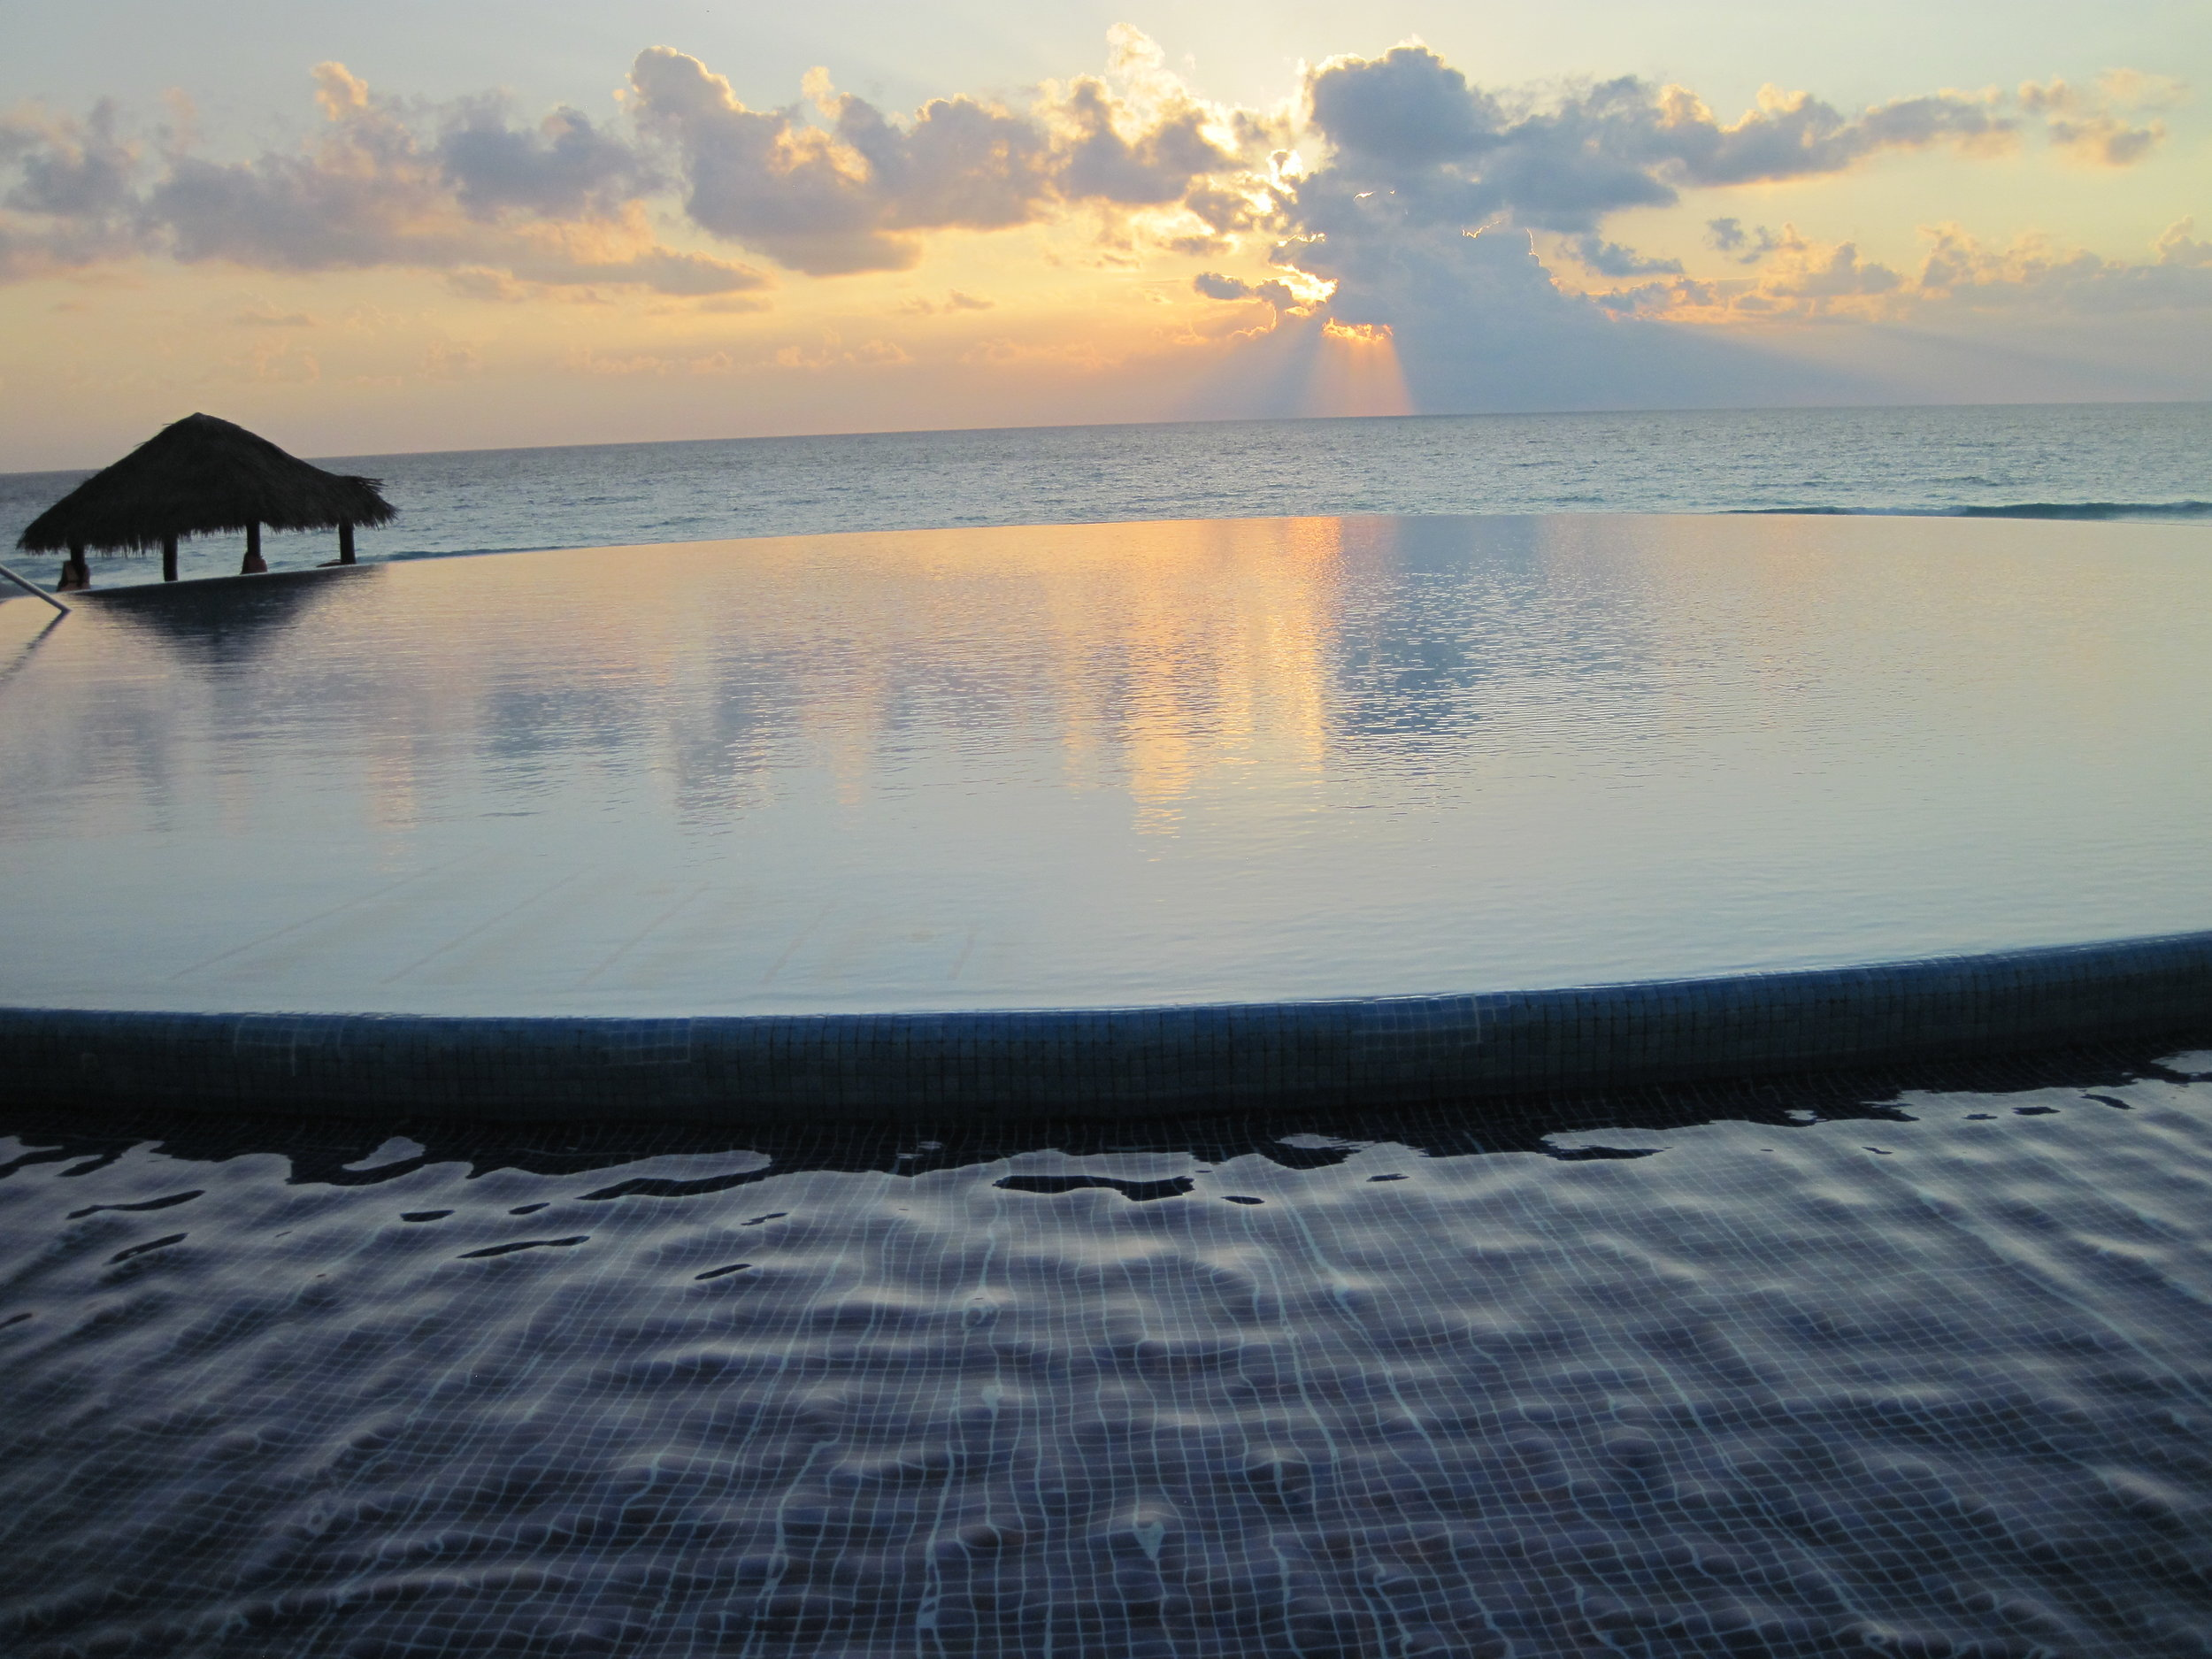 Infinity pool at Live Aqua resort in Cancun